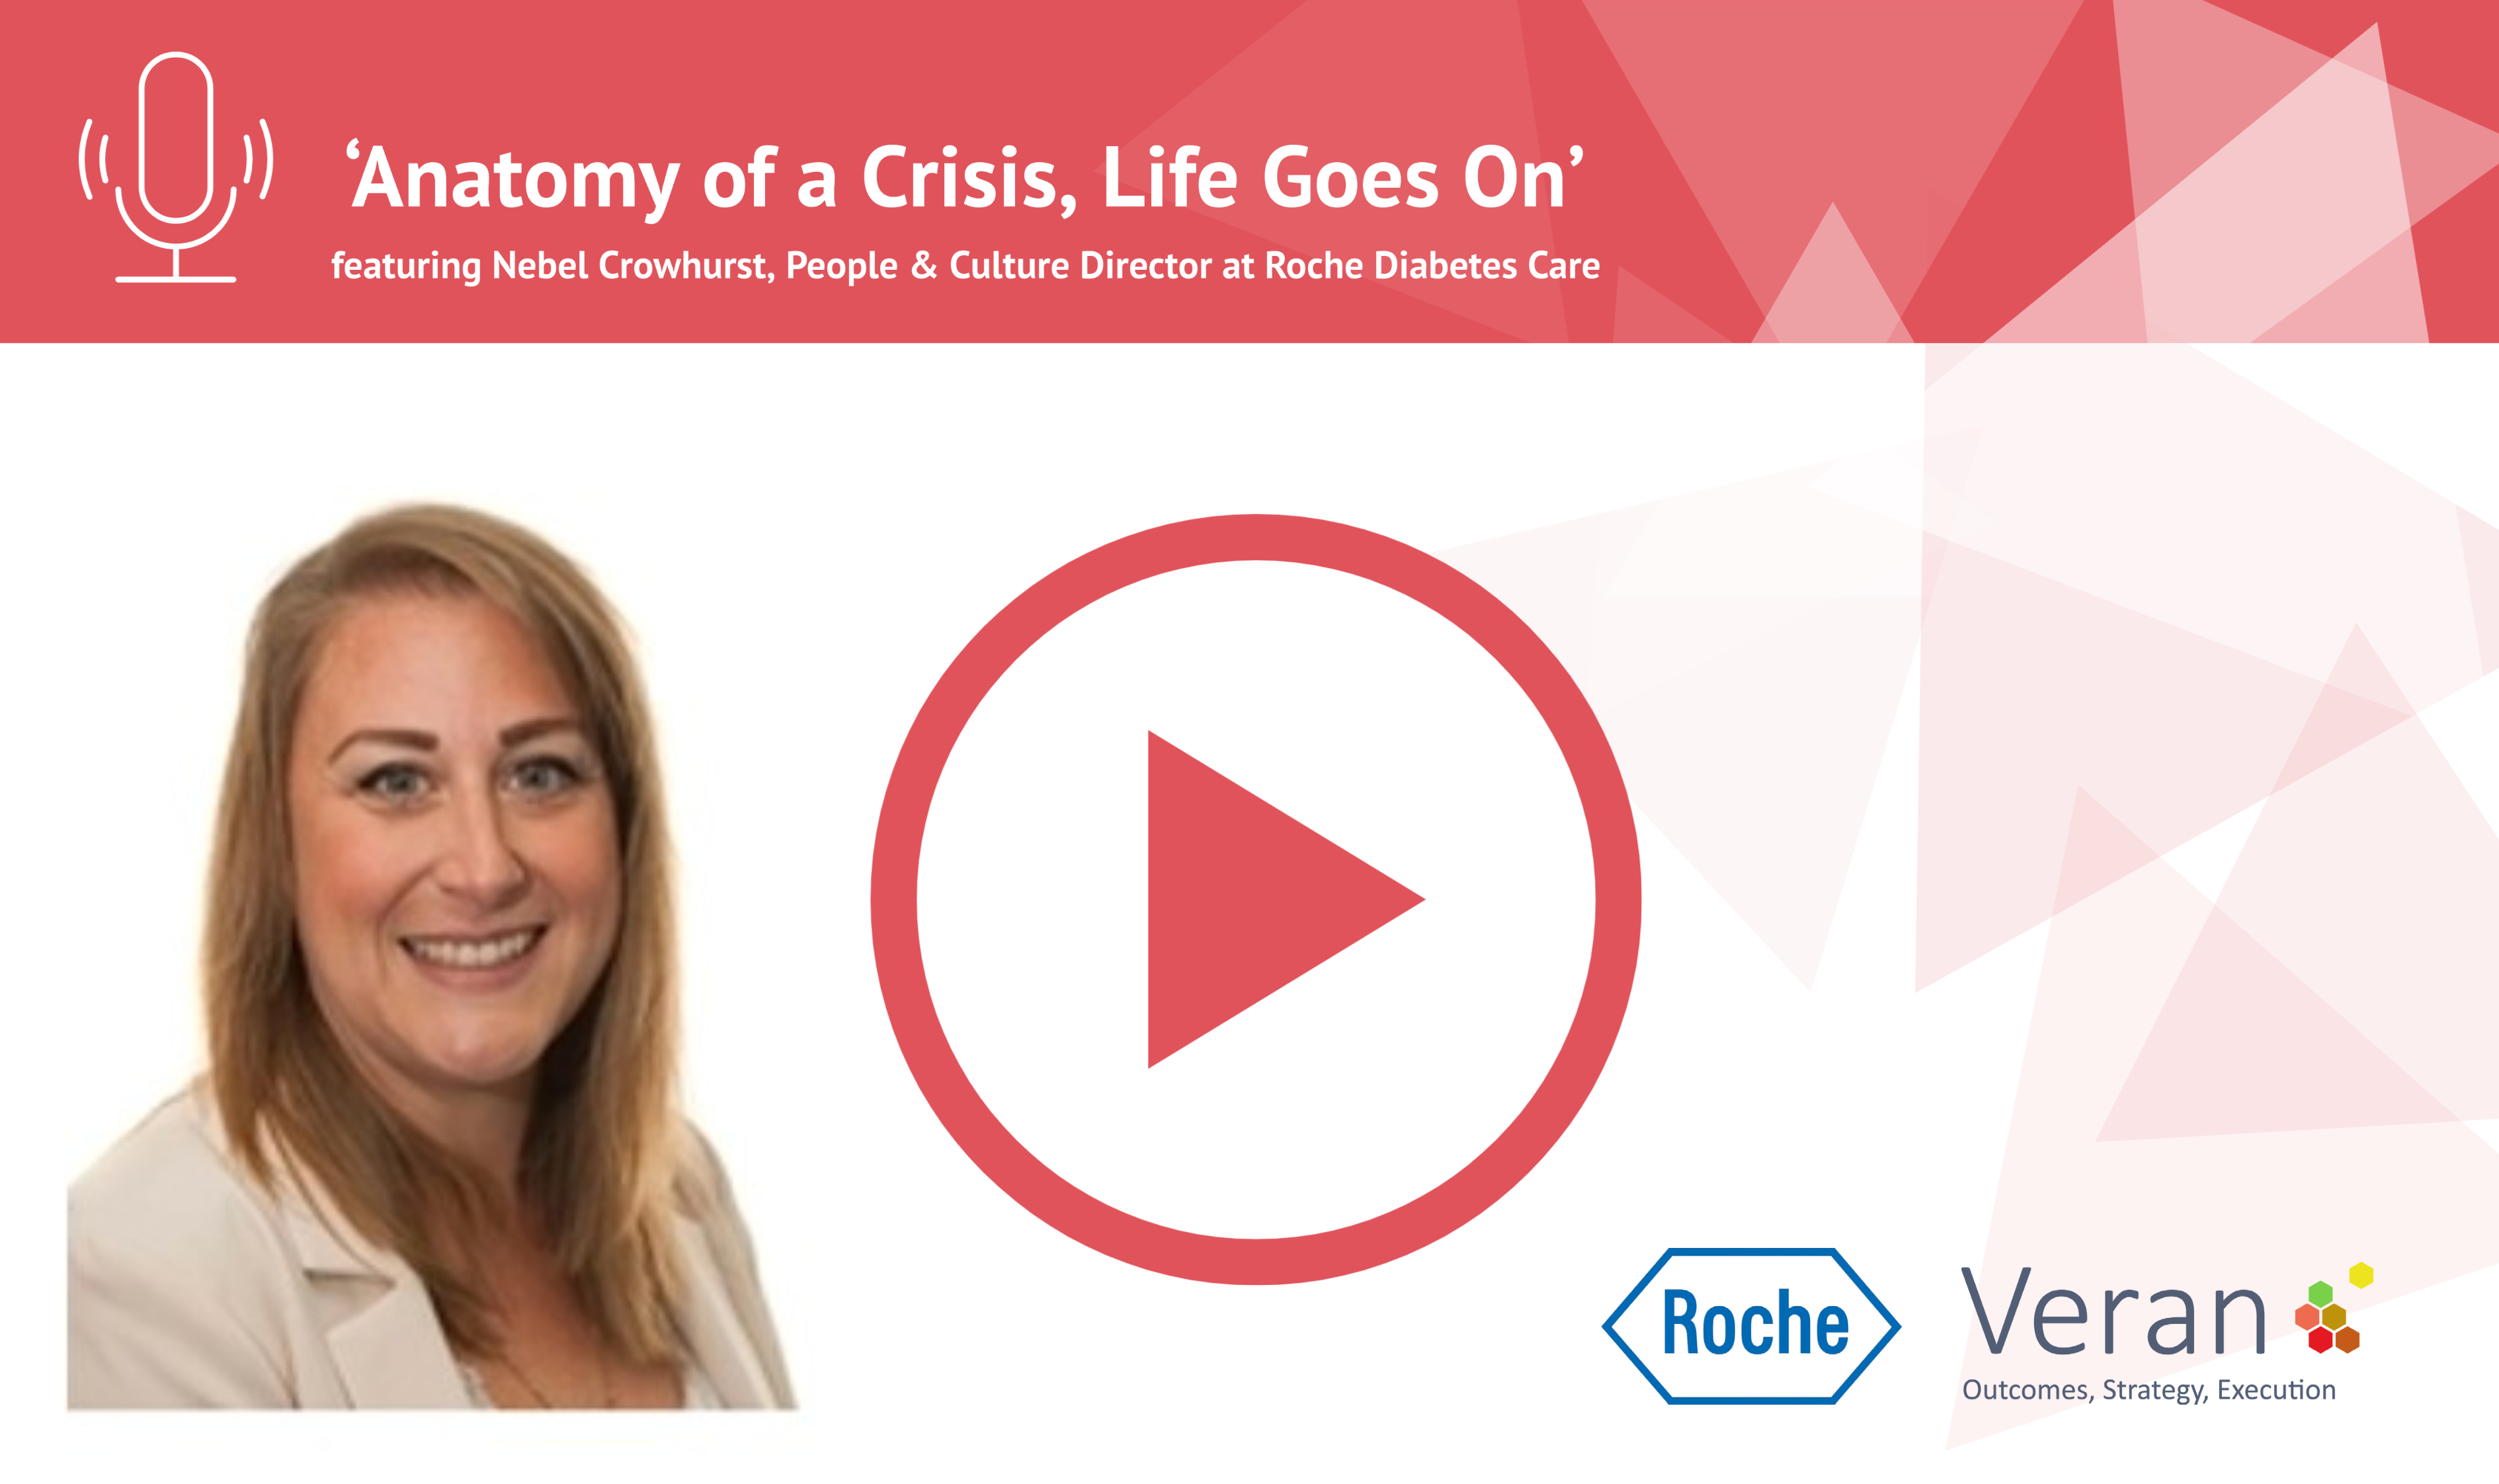 Anatomy of a Crisis, Life Goes On with Nebel Crowhurst, People & Culture Director at Roche Diabetes